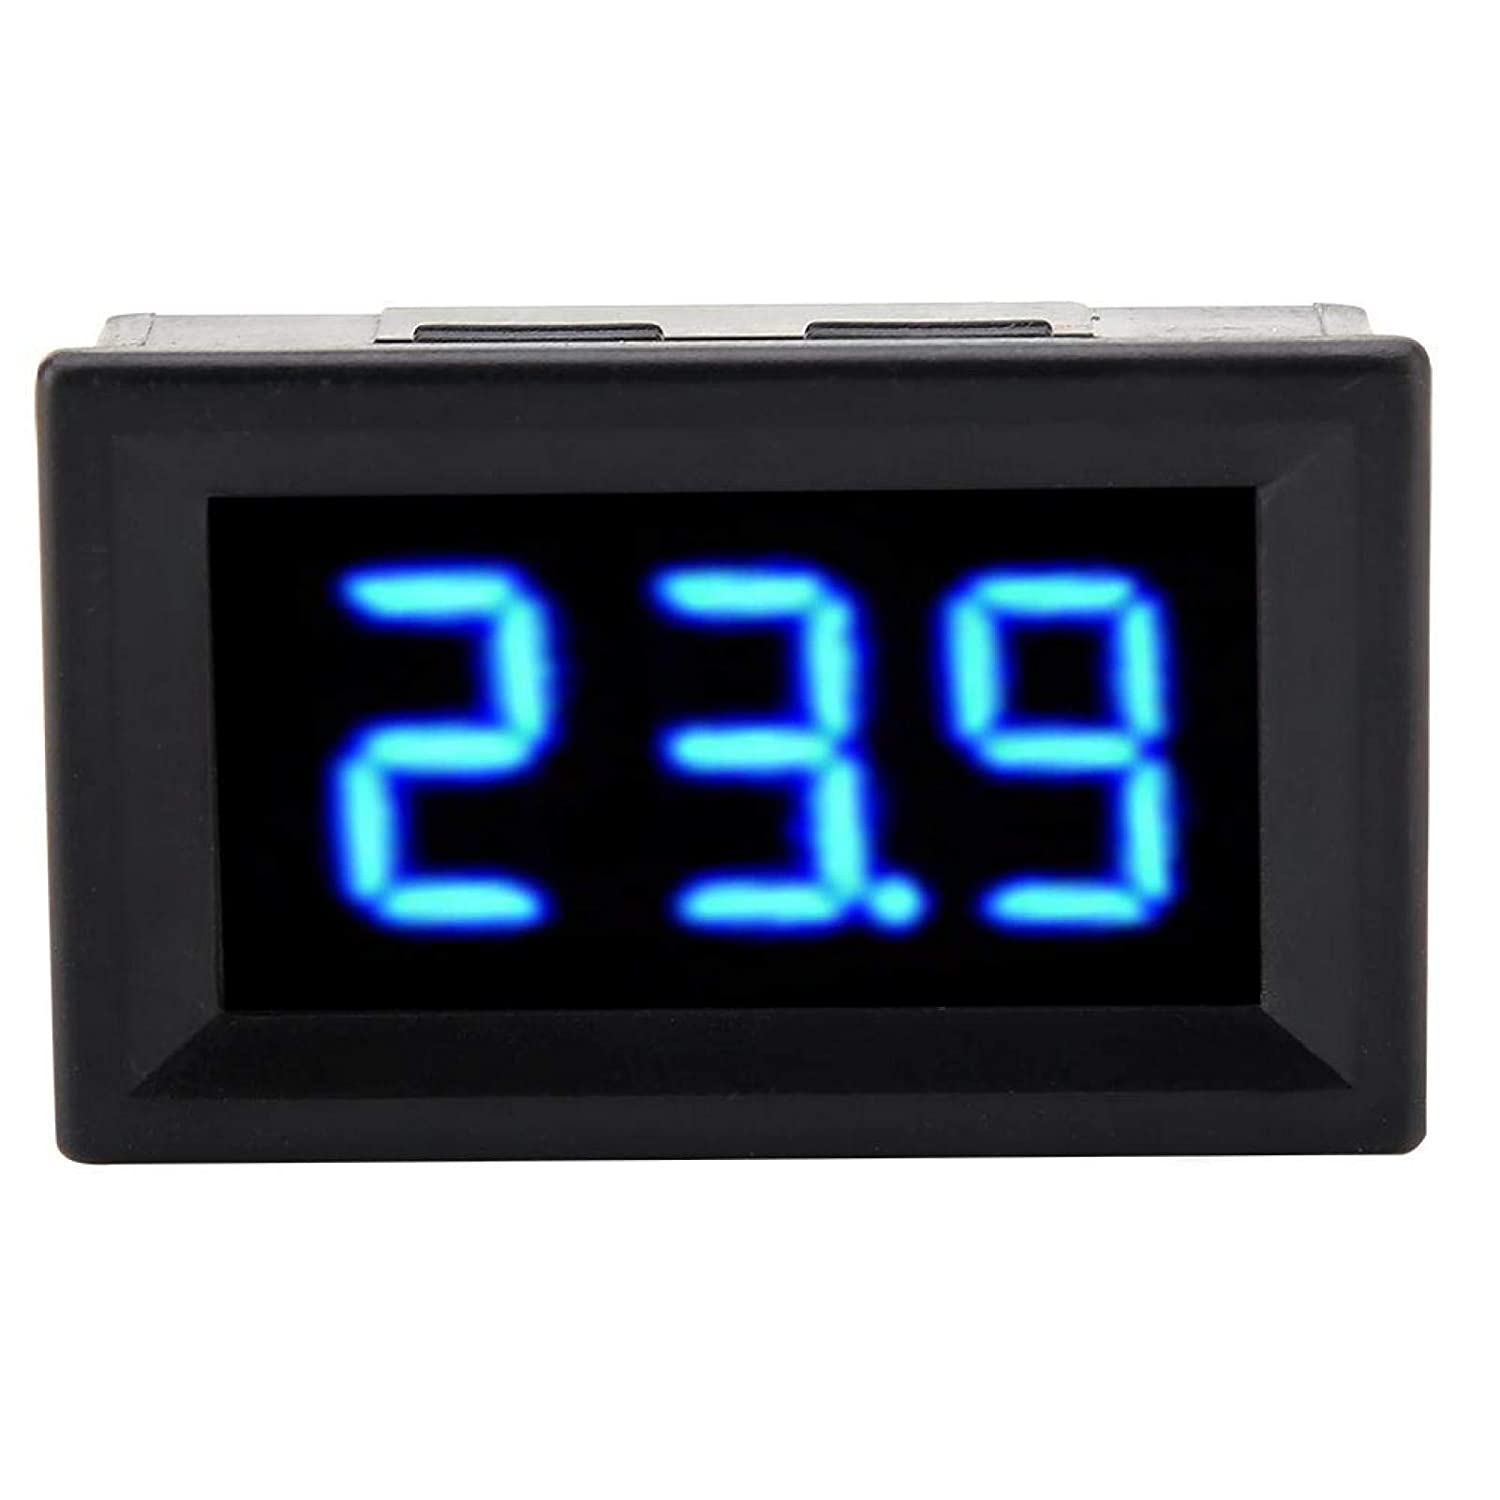 Mini Digital Voltmeter Two Be super welcome Measured V Waterproof Wire Lowest price challenge